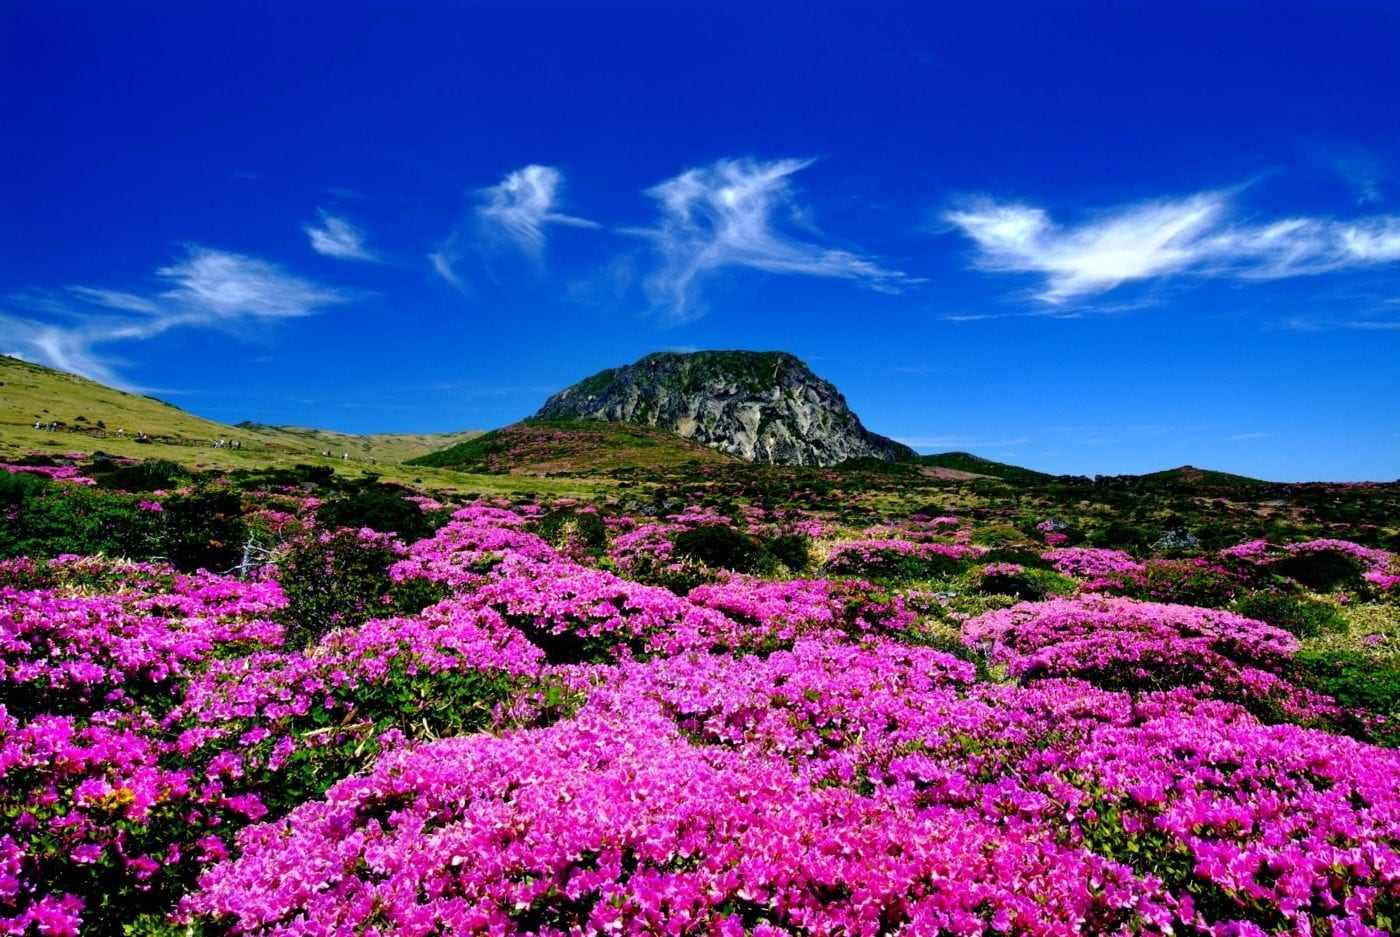 https://10mag.com/directory/entertainment/listing/hallasan-mountain-cheju-jeju-do